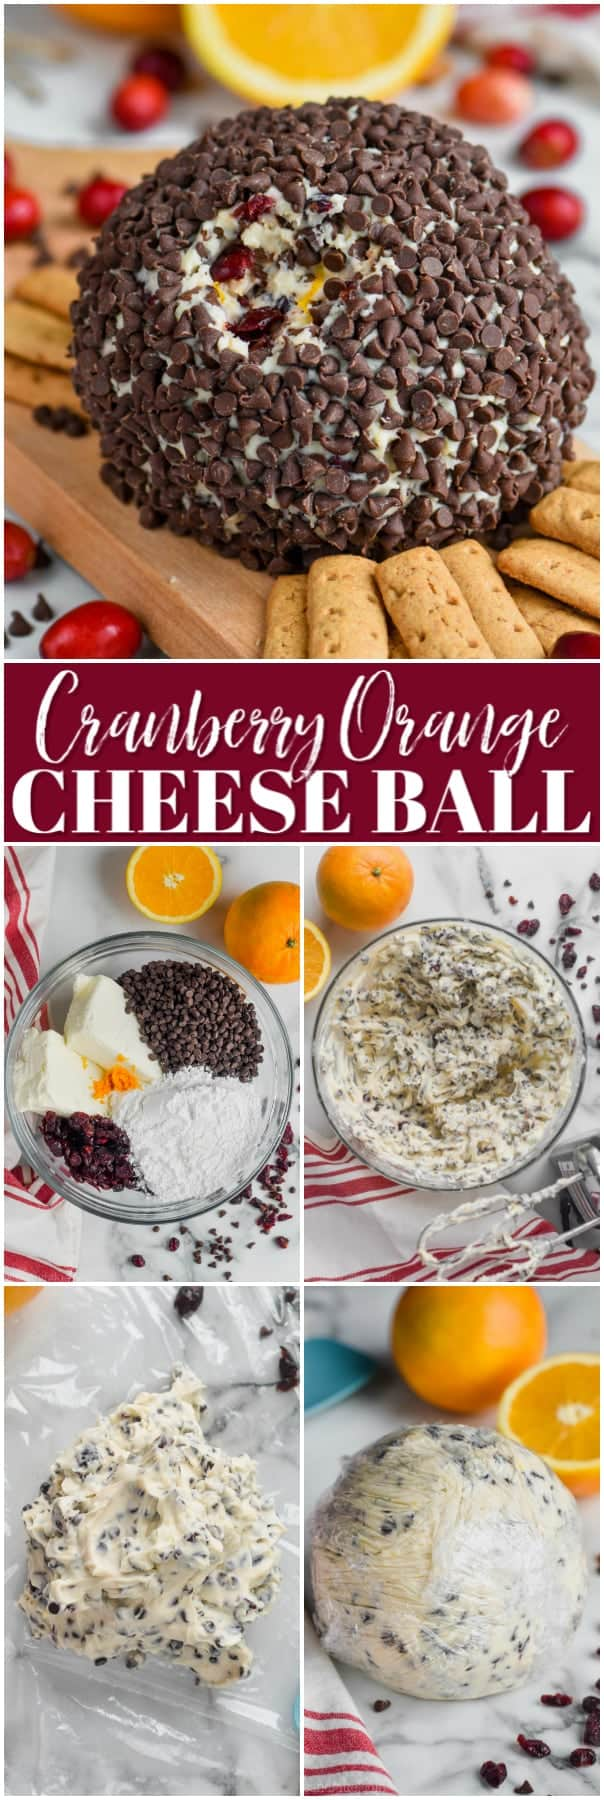 chocolate chip coated cranberry orange cheese ball recipe on a cutting board with crackers